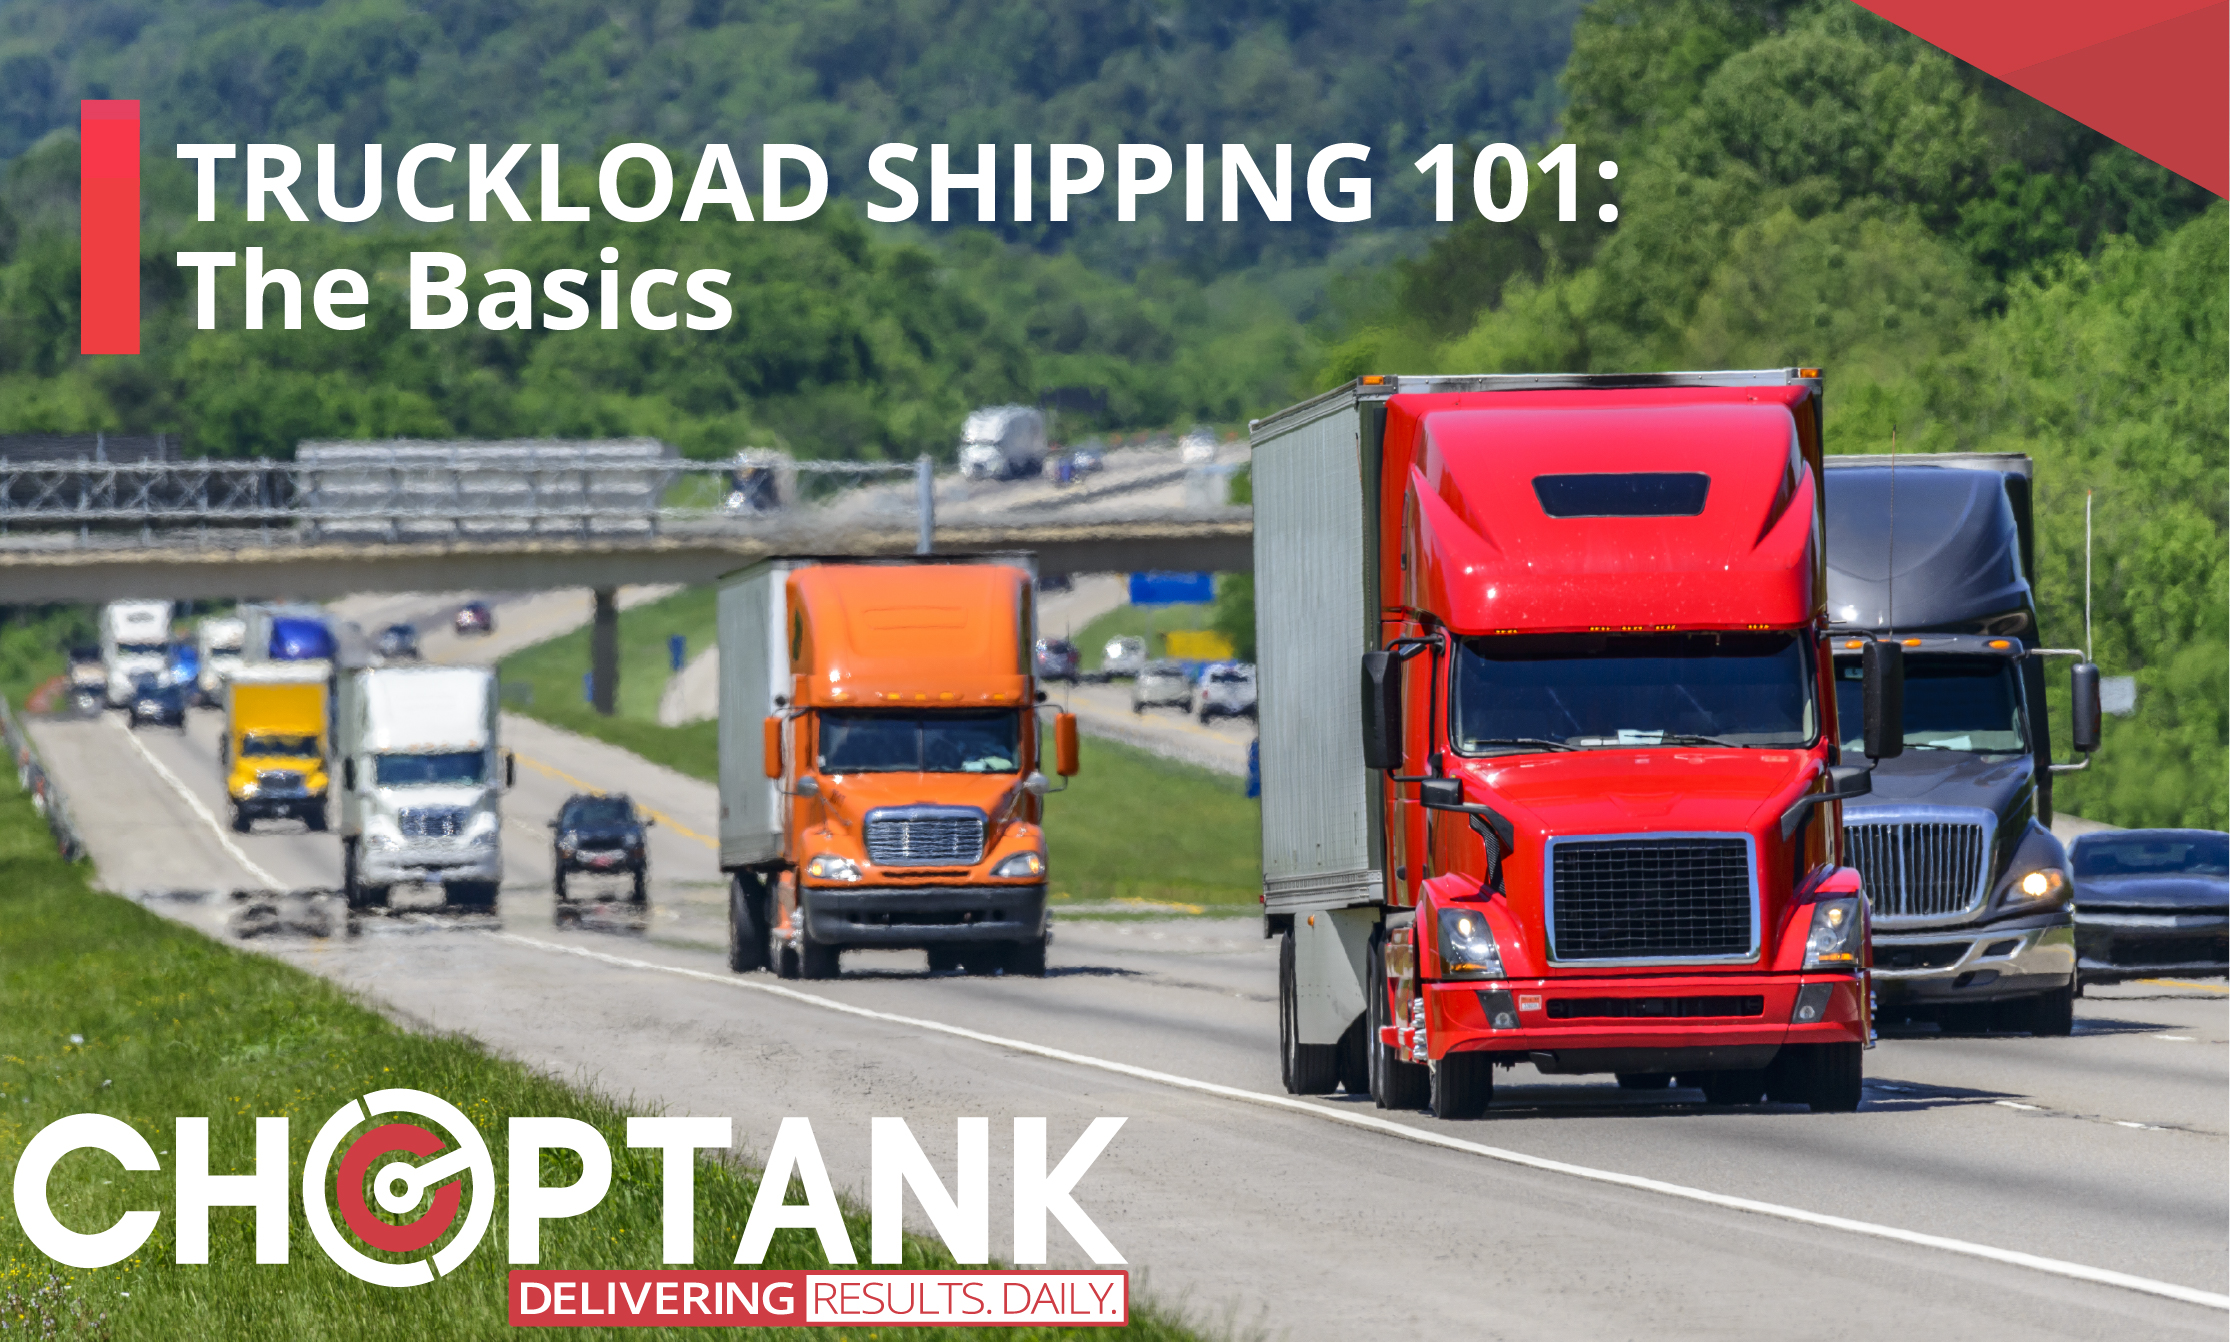 Truckload Shipping 101: The Basics